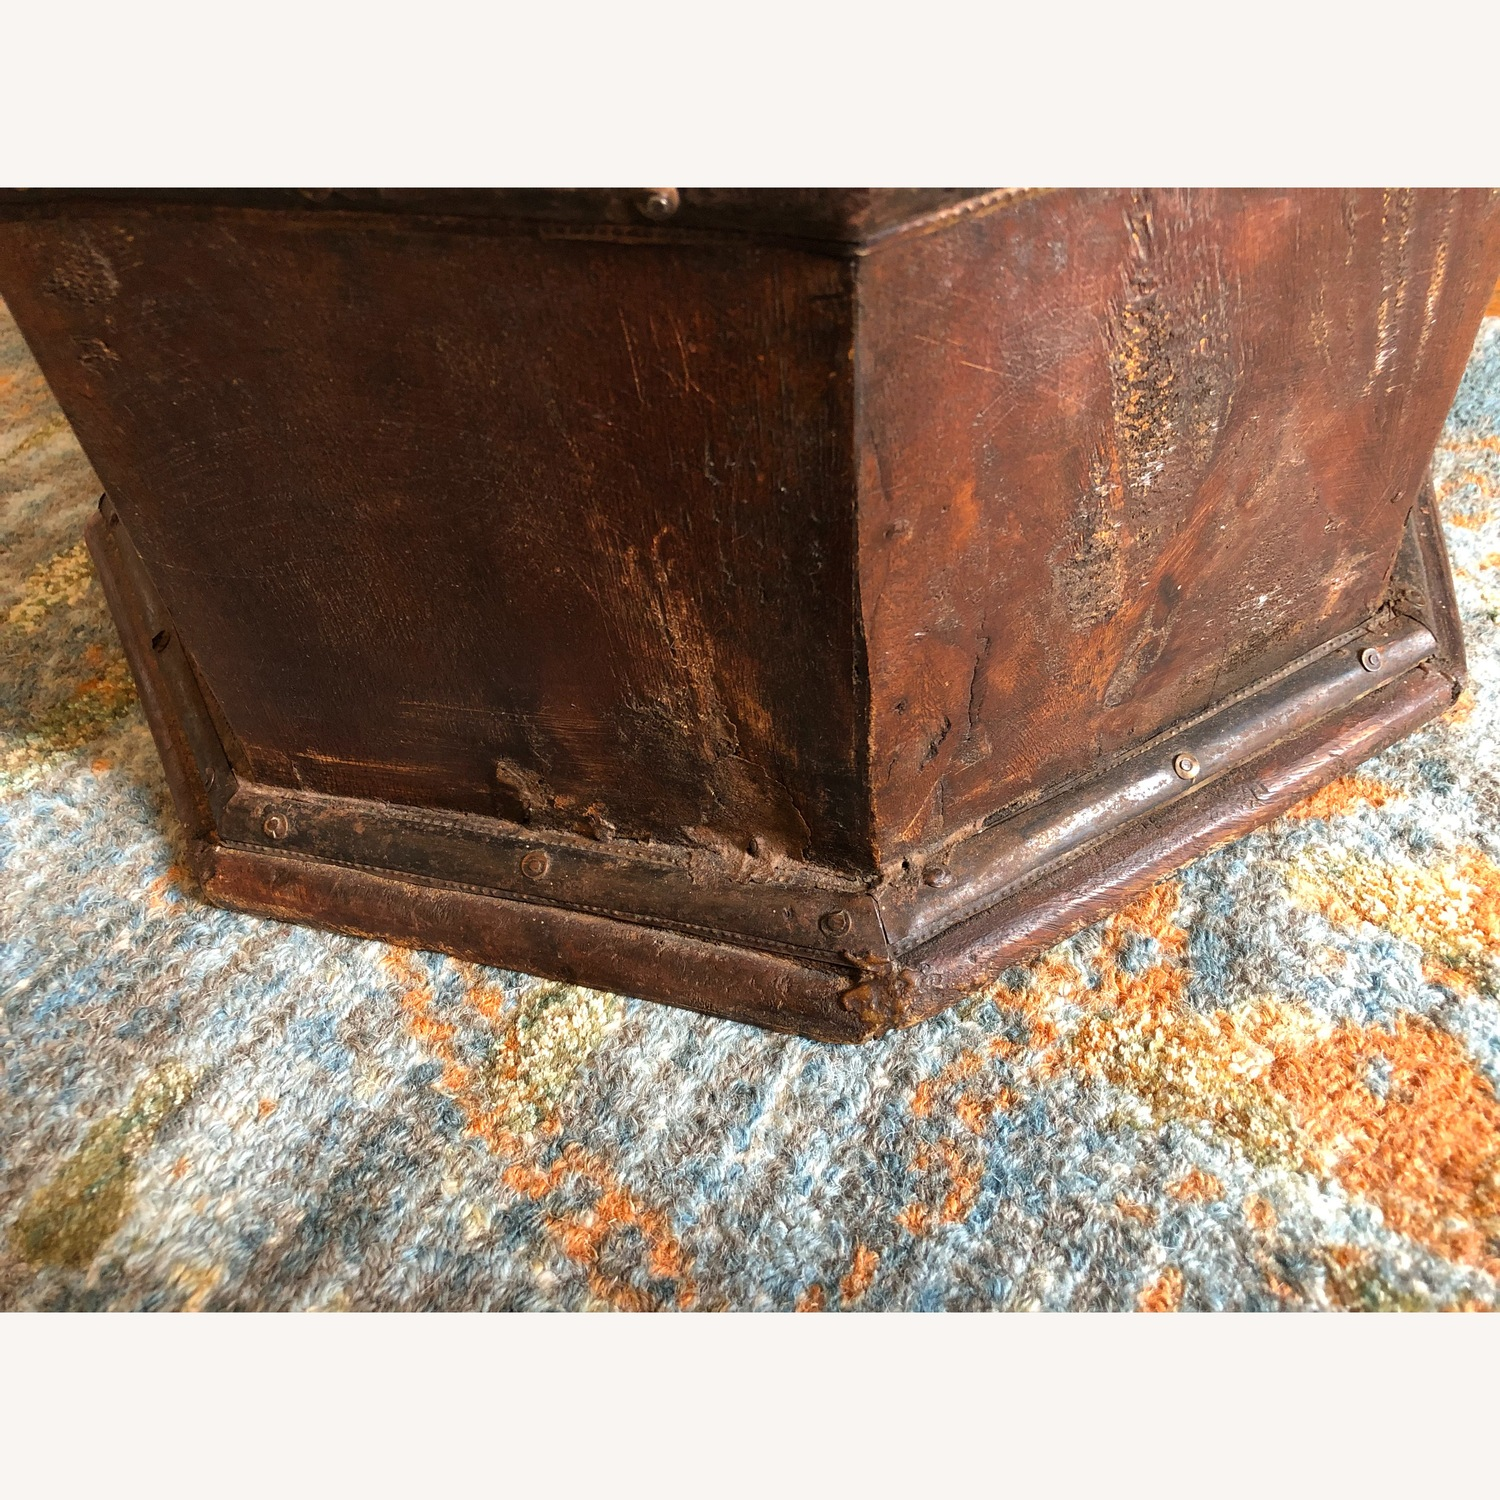 Vintage Octagonal Side Table Trunk with Storage - image-9